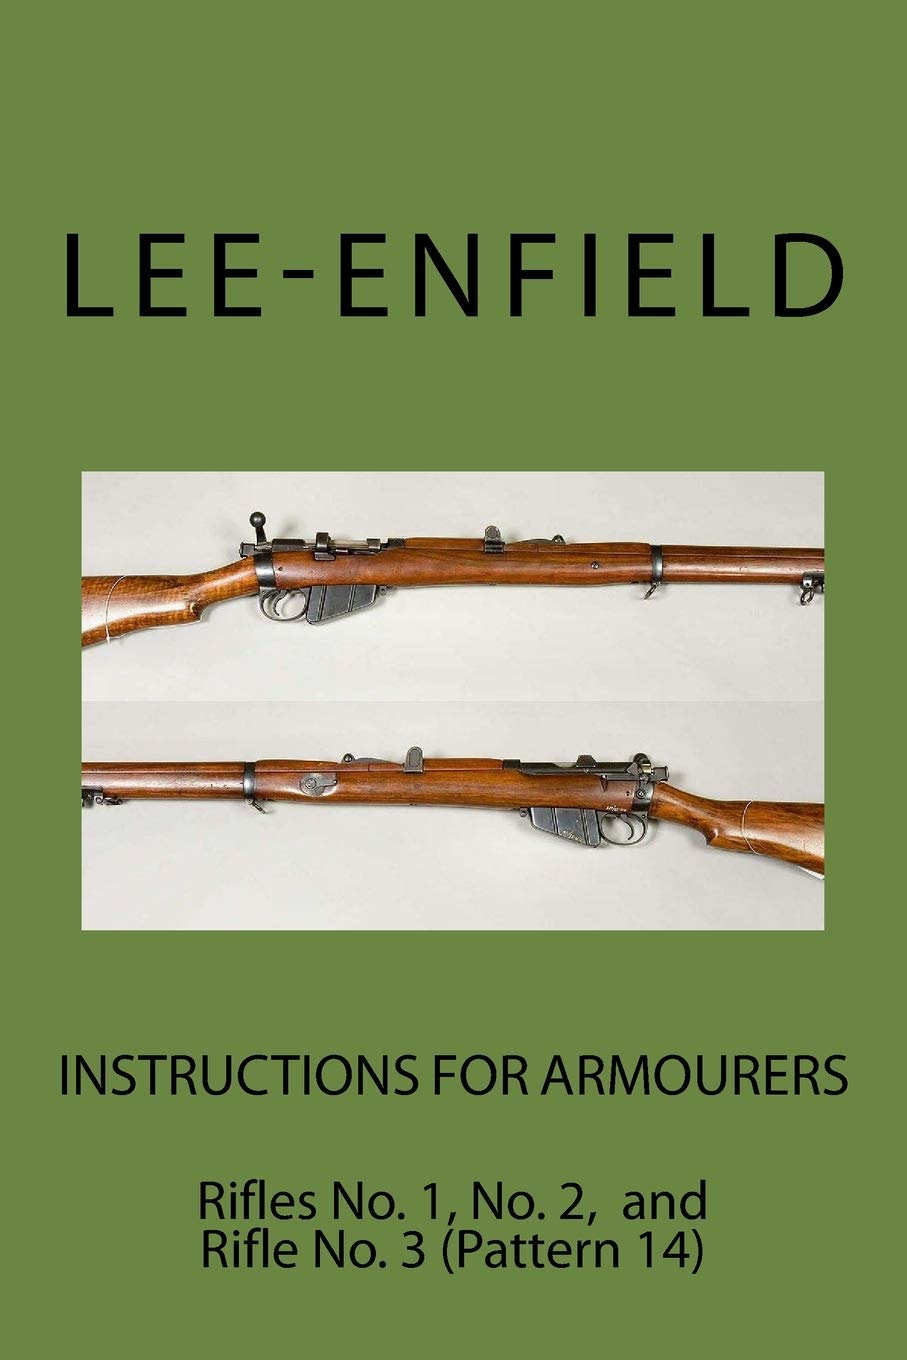 No.2 and No 3 1 Pattern 14 Instructions for Armourers: Rifles No